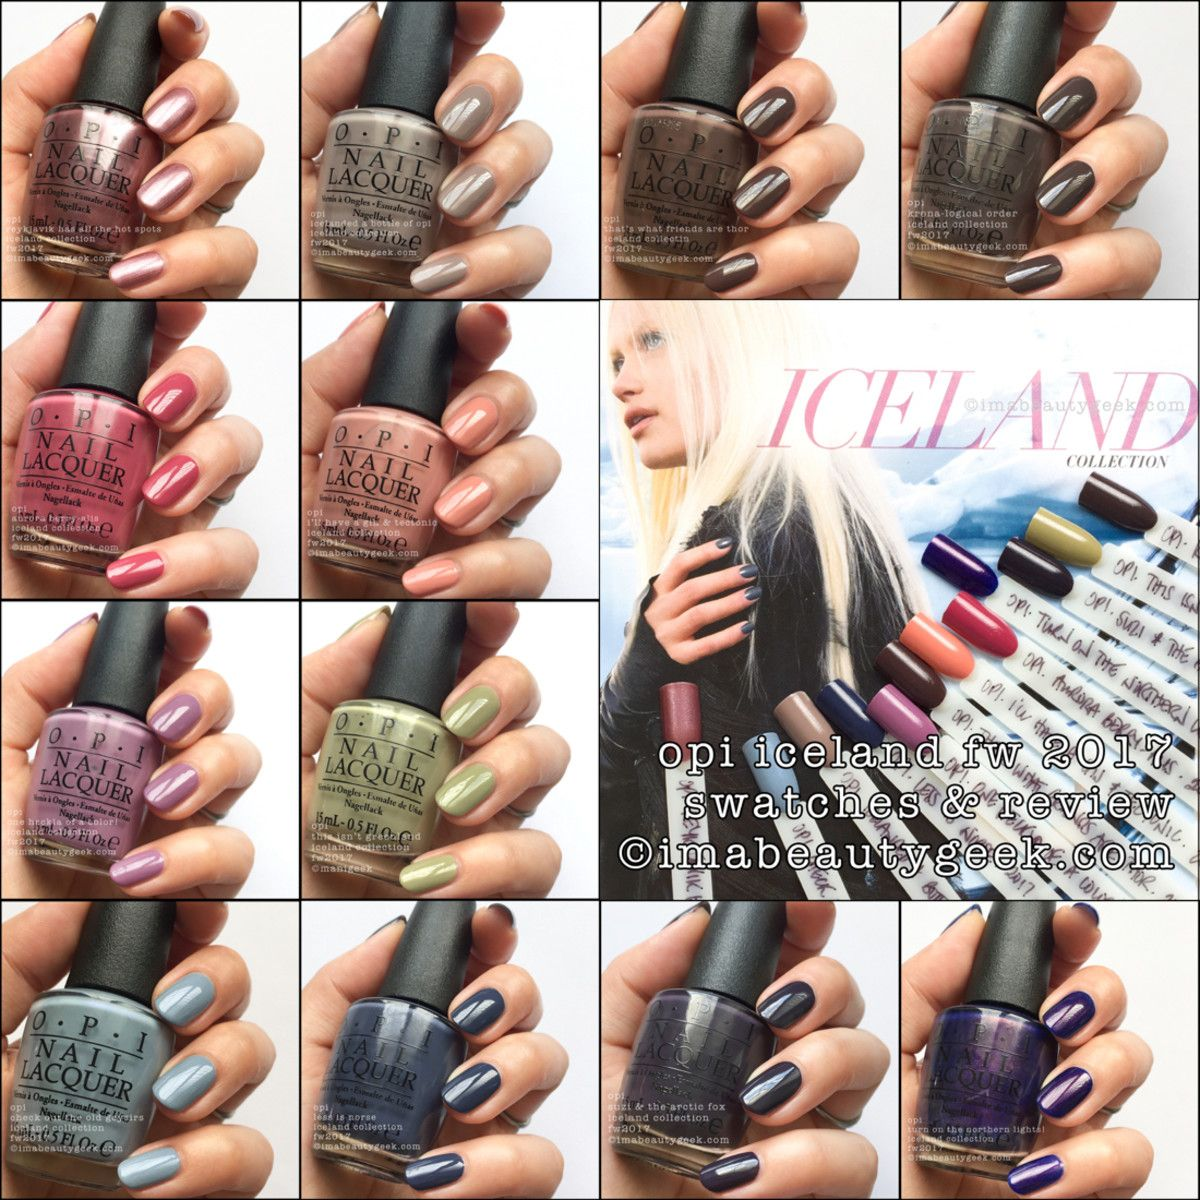 OPI Iceland Collection 2017 ©Beautygeeks Composite   Ongles ...